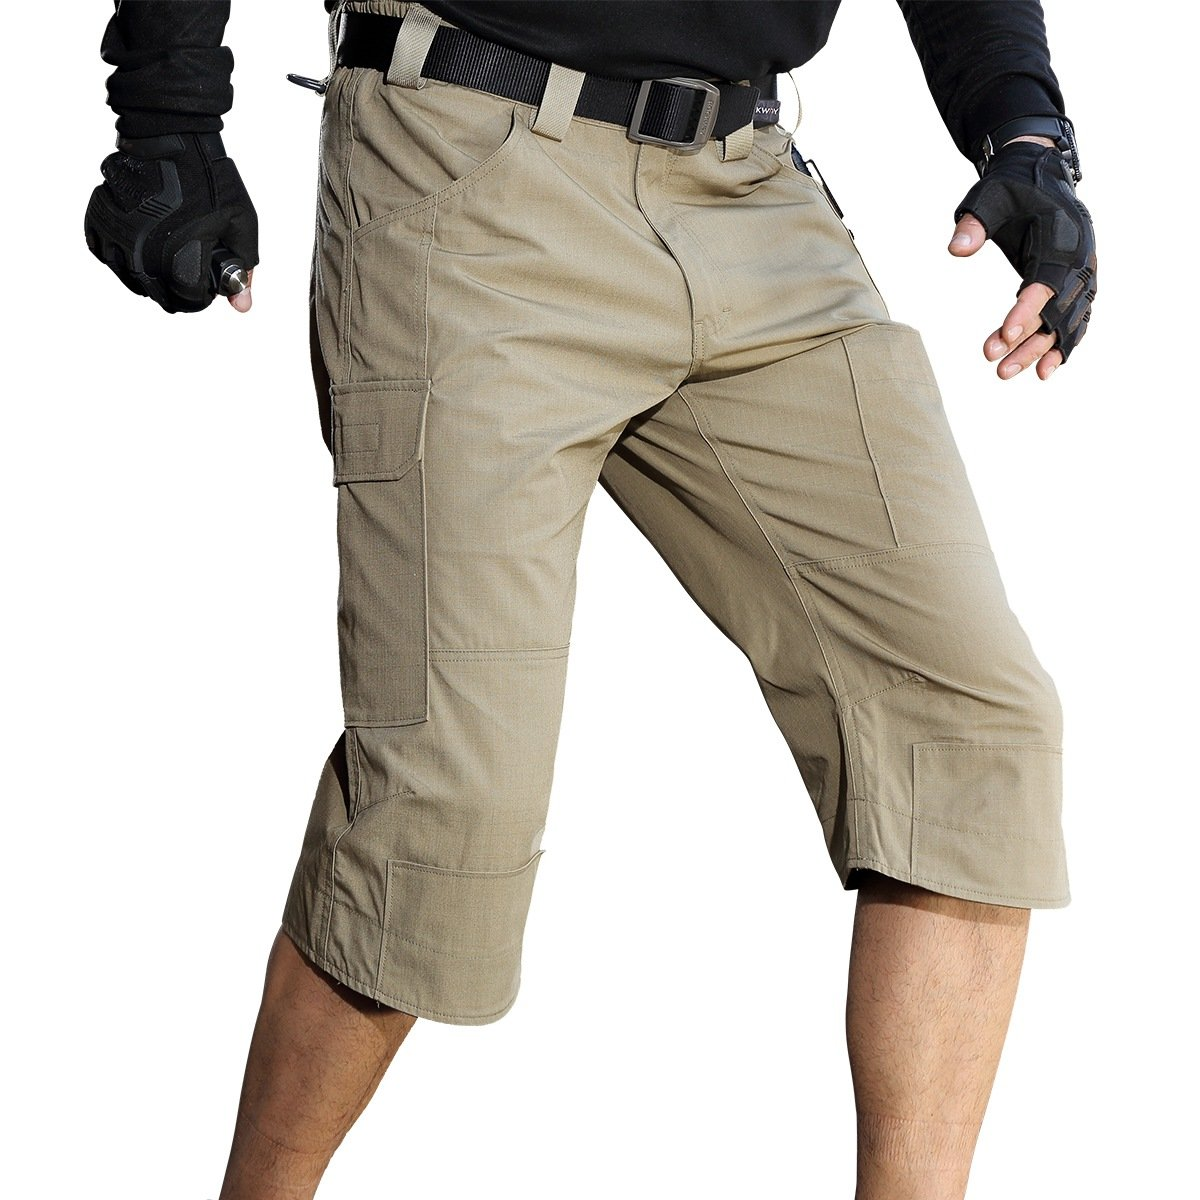 FREE SOLDIER Men's Capri Shorts Pants Casual 3/4 Water Resistant Multi Pockets Tactical Cargo Short (Brown W34)